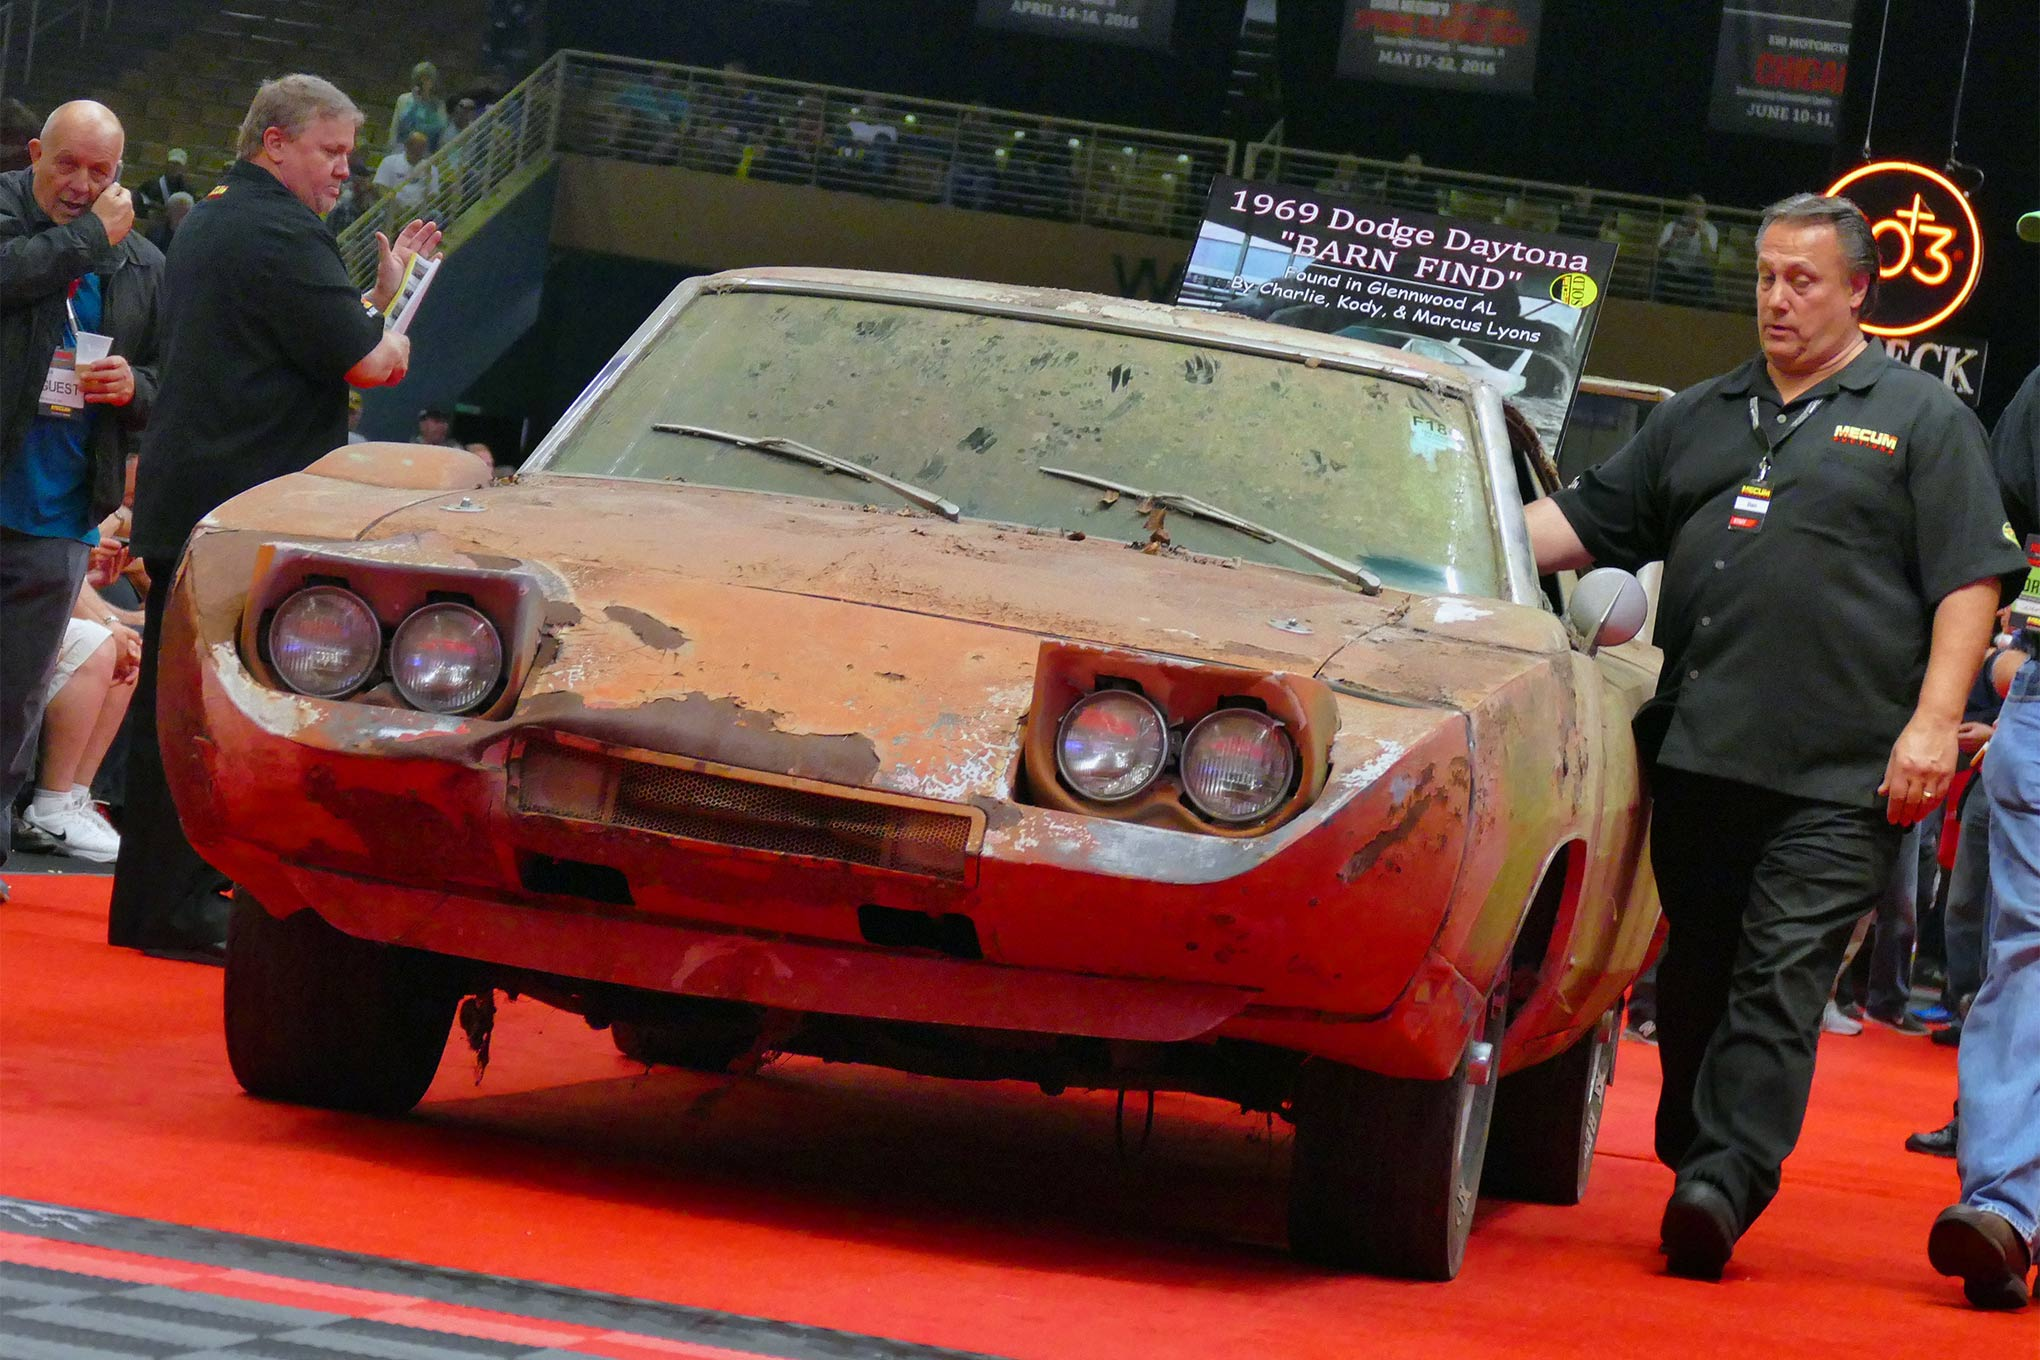 With an ask of $95,000 and the reserve off, the car was moved onto the final block of the stage, where the deal gets done. Indeed, it had already hammered to a final bid of $90,000 by the time it had been stopped via the Fred Flintstone method. Photo Credit: Joel Stunkard